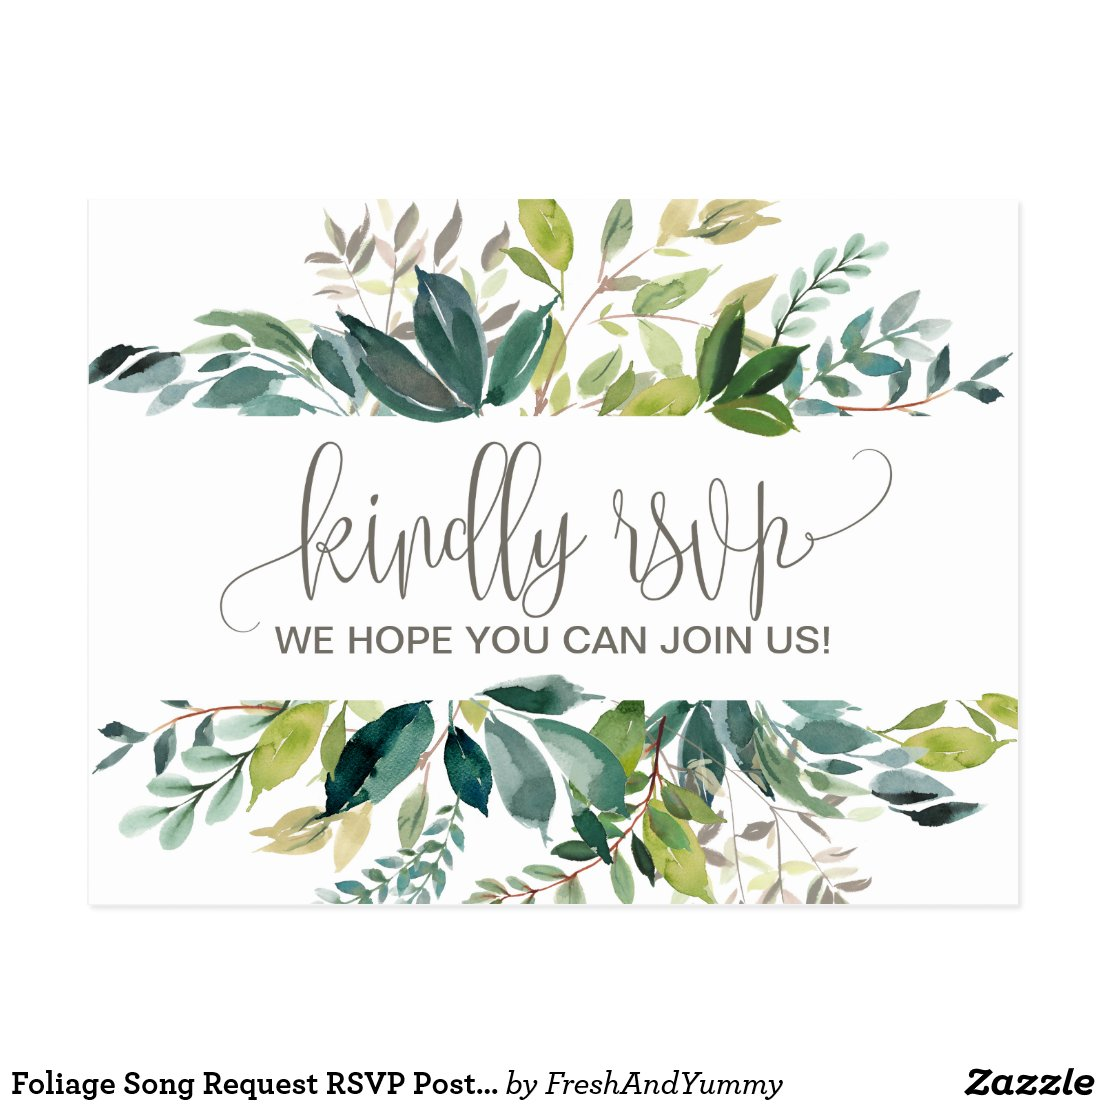 Foliage Song Request RSVP